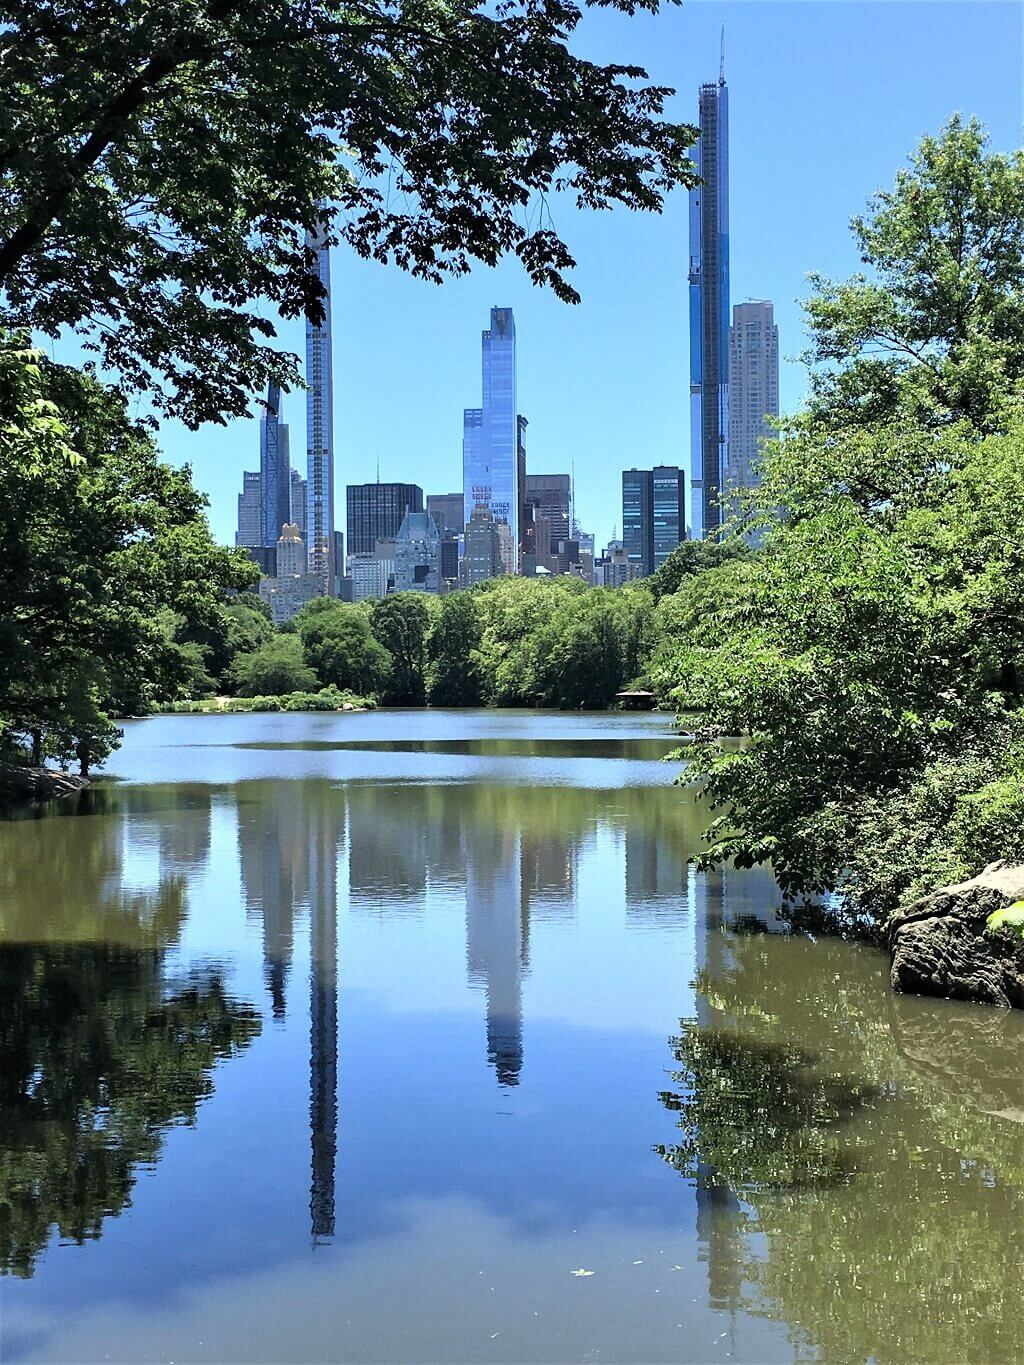 BEAUTIFUL PLACES TO VISIT IN CENTRAL PARK, NYC - WITH MAP! - Travels with Talek